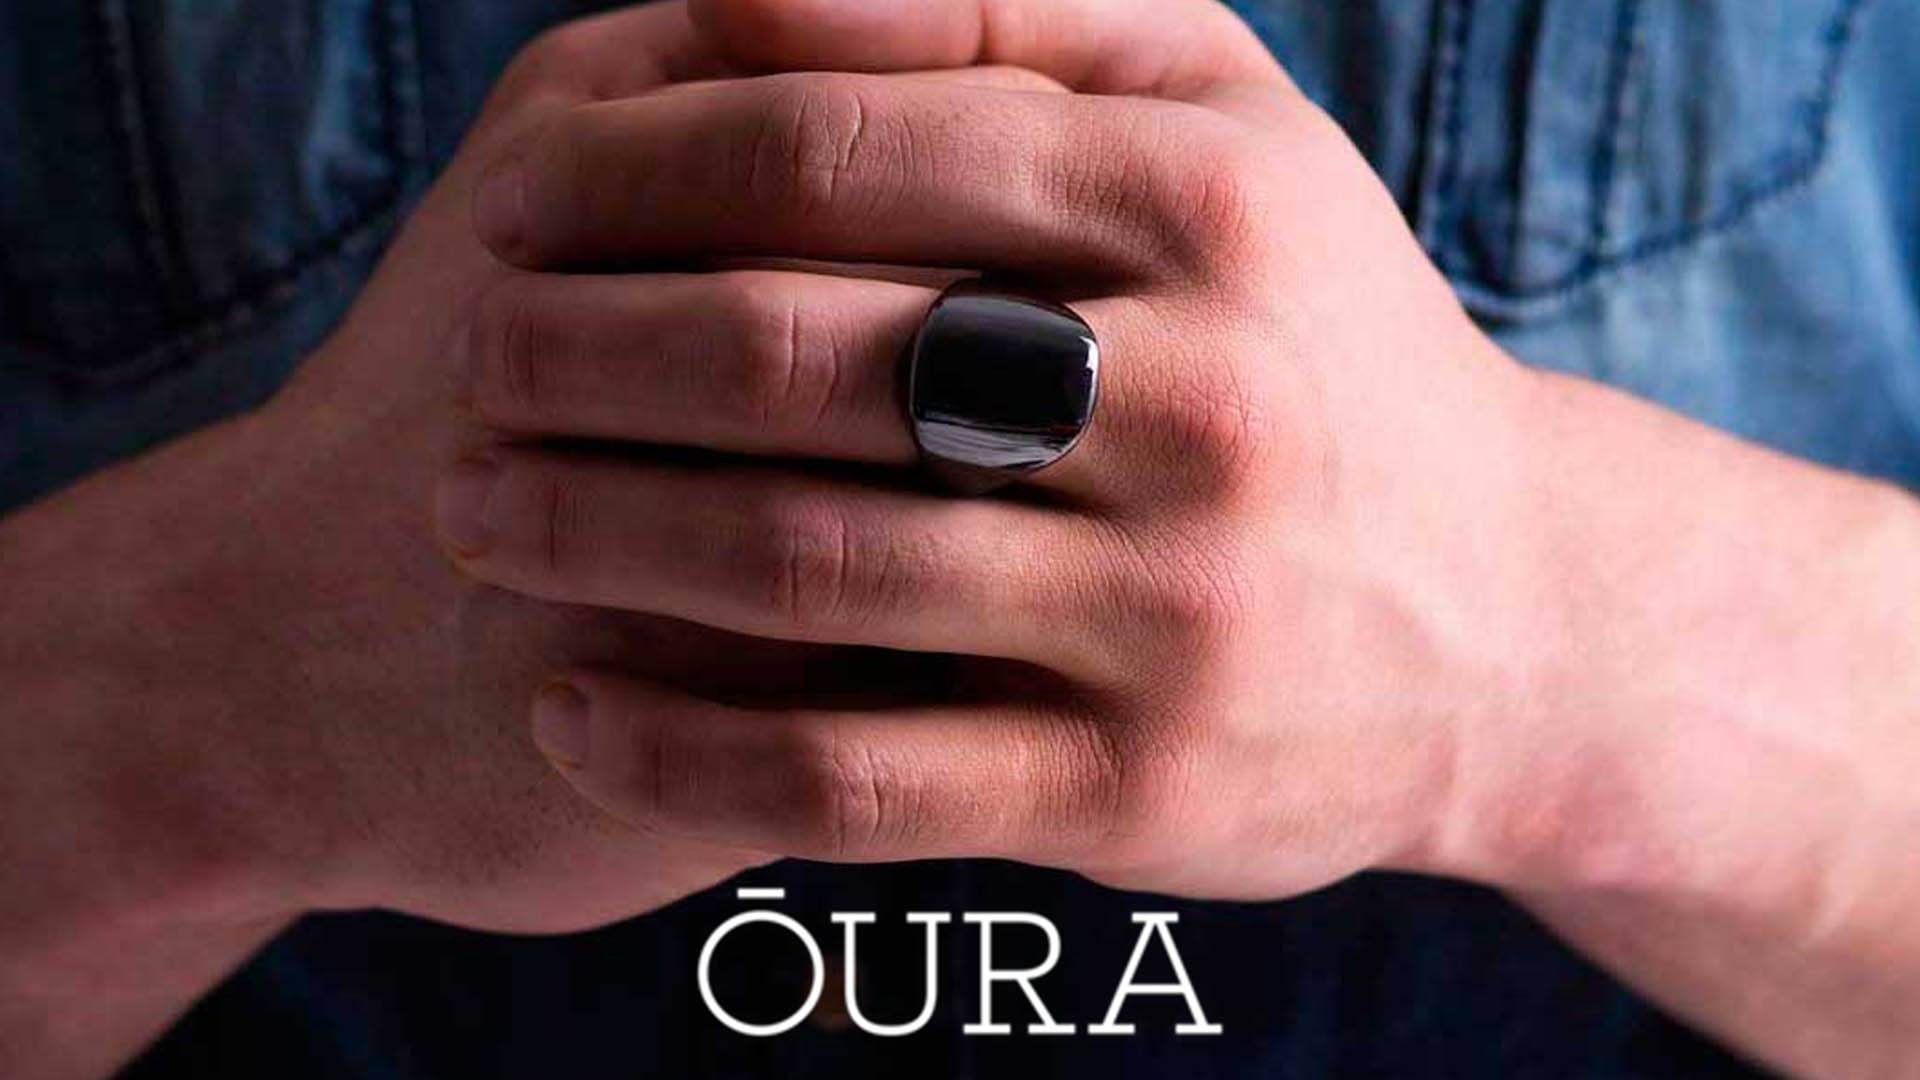 oura ring sleep tracker for pemf devices